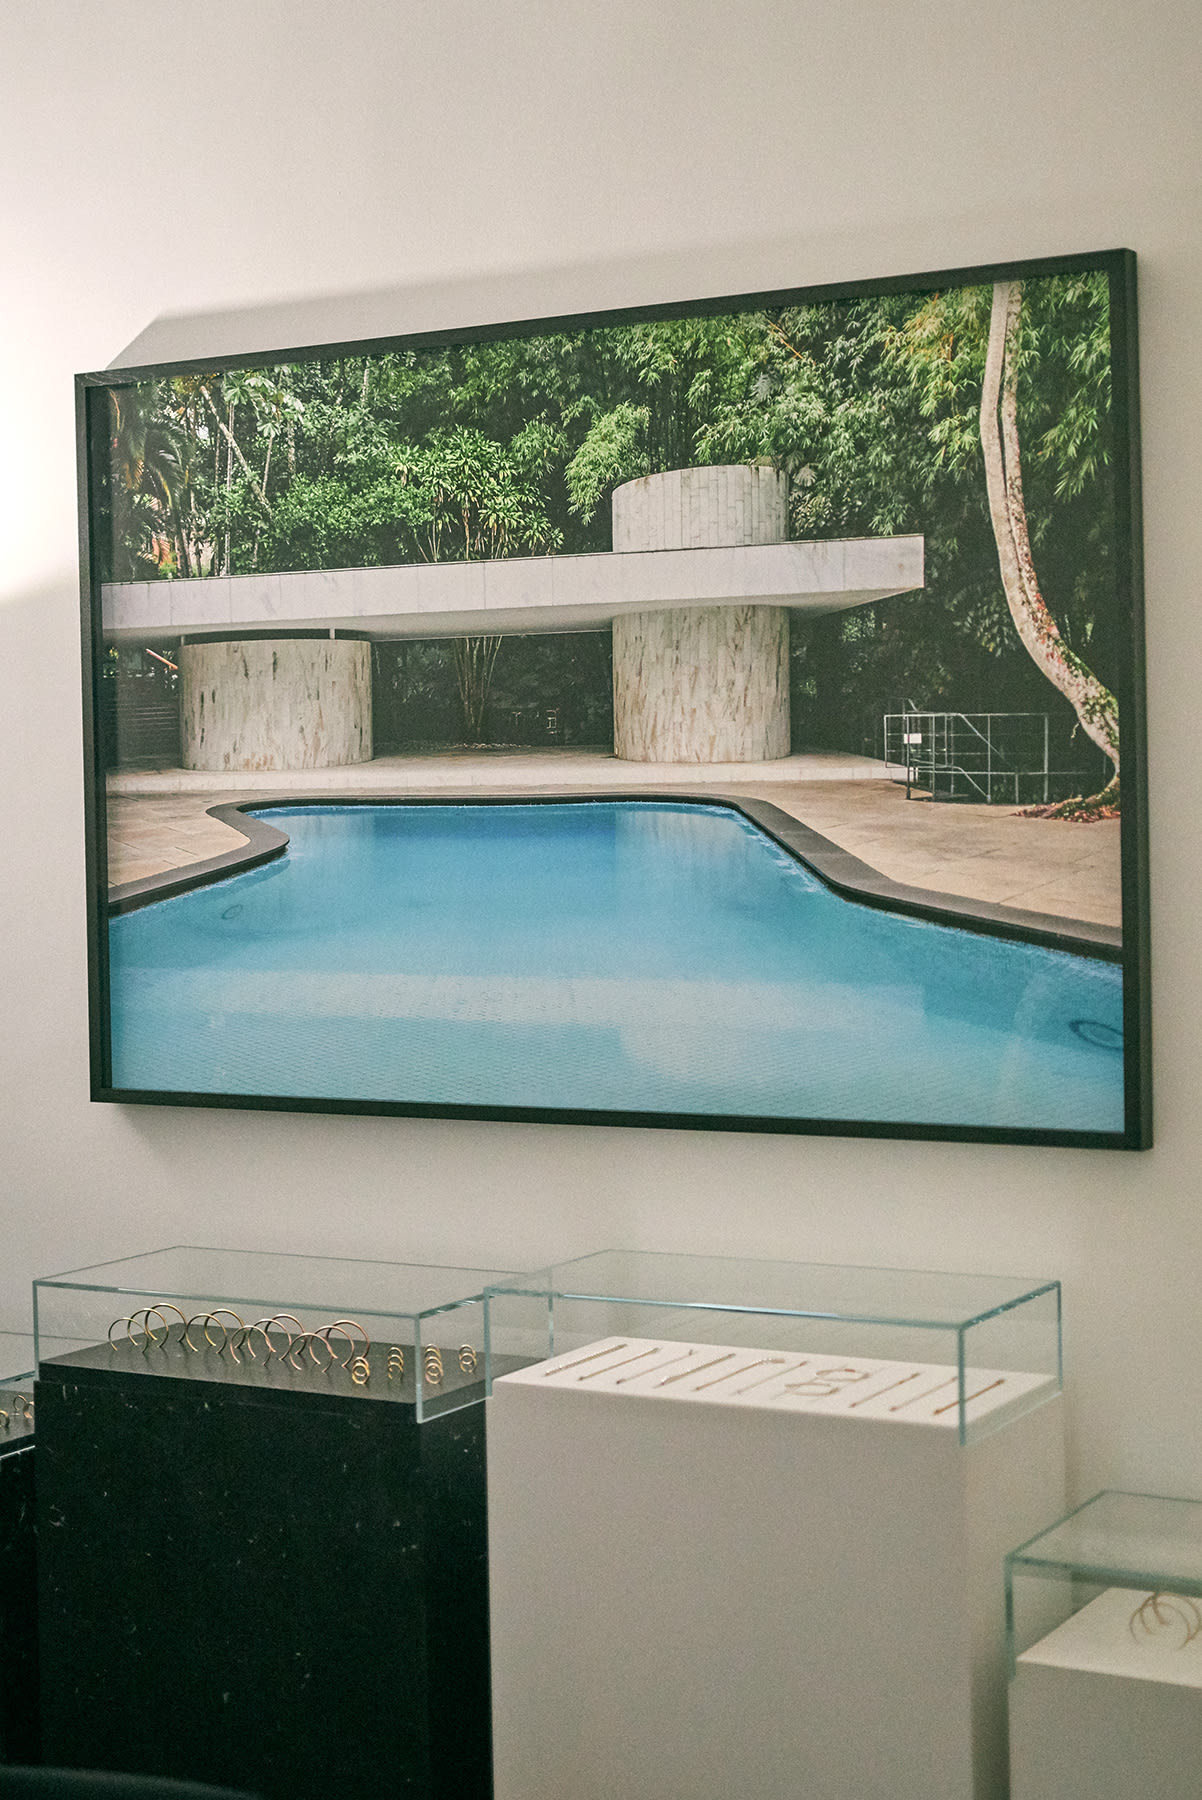 """Rio de Janeiro"", 2009, by Vincent Mercier at the Le Gramme showroom in Paris"